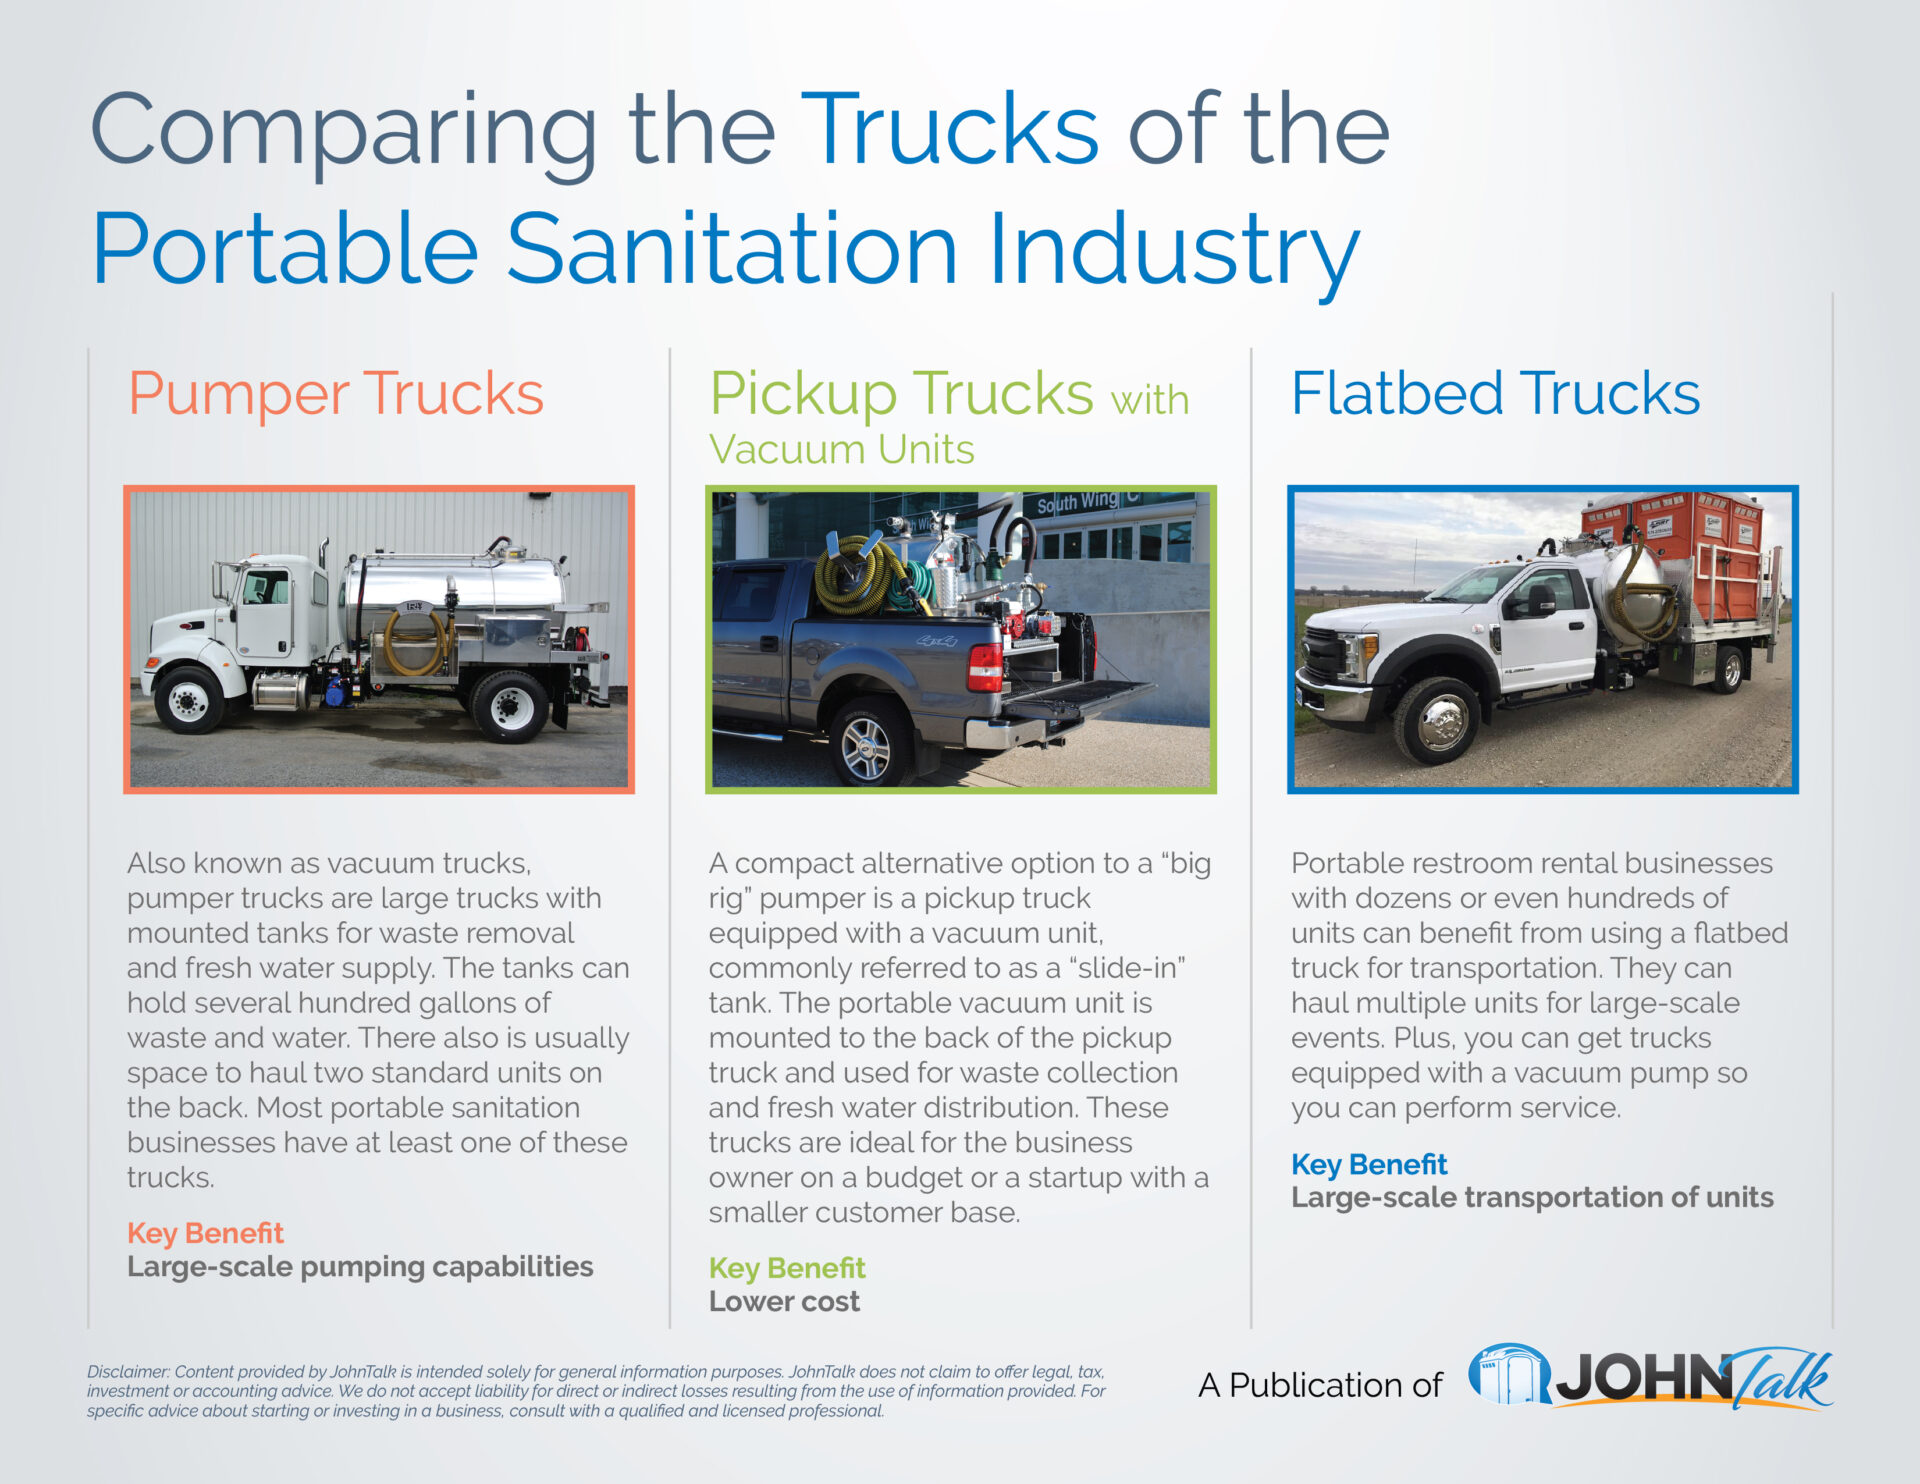 Comparing the Trucks of the Portable Sanitation Industry